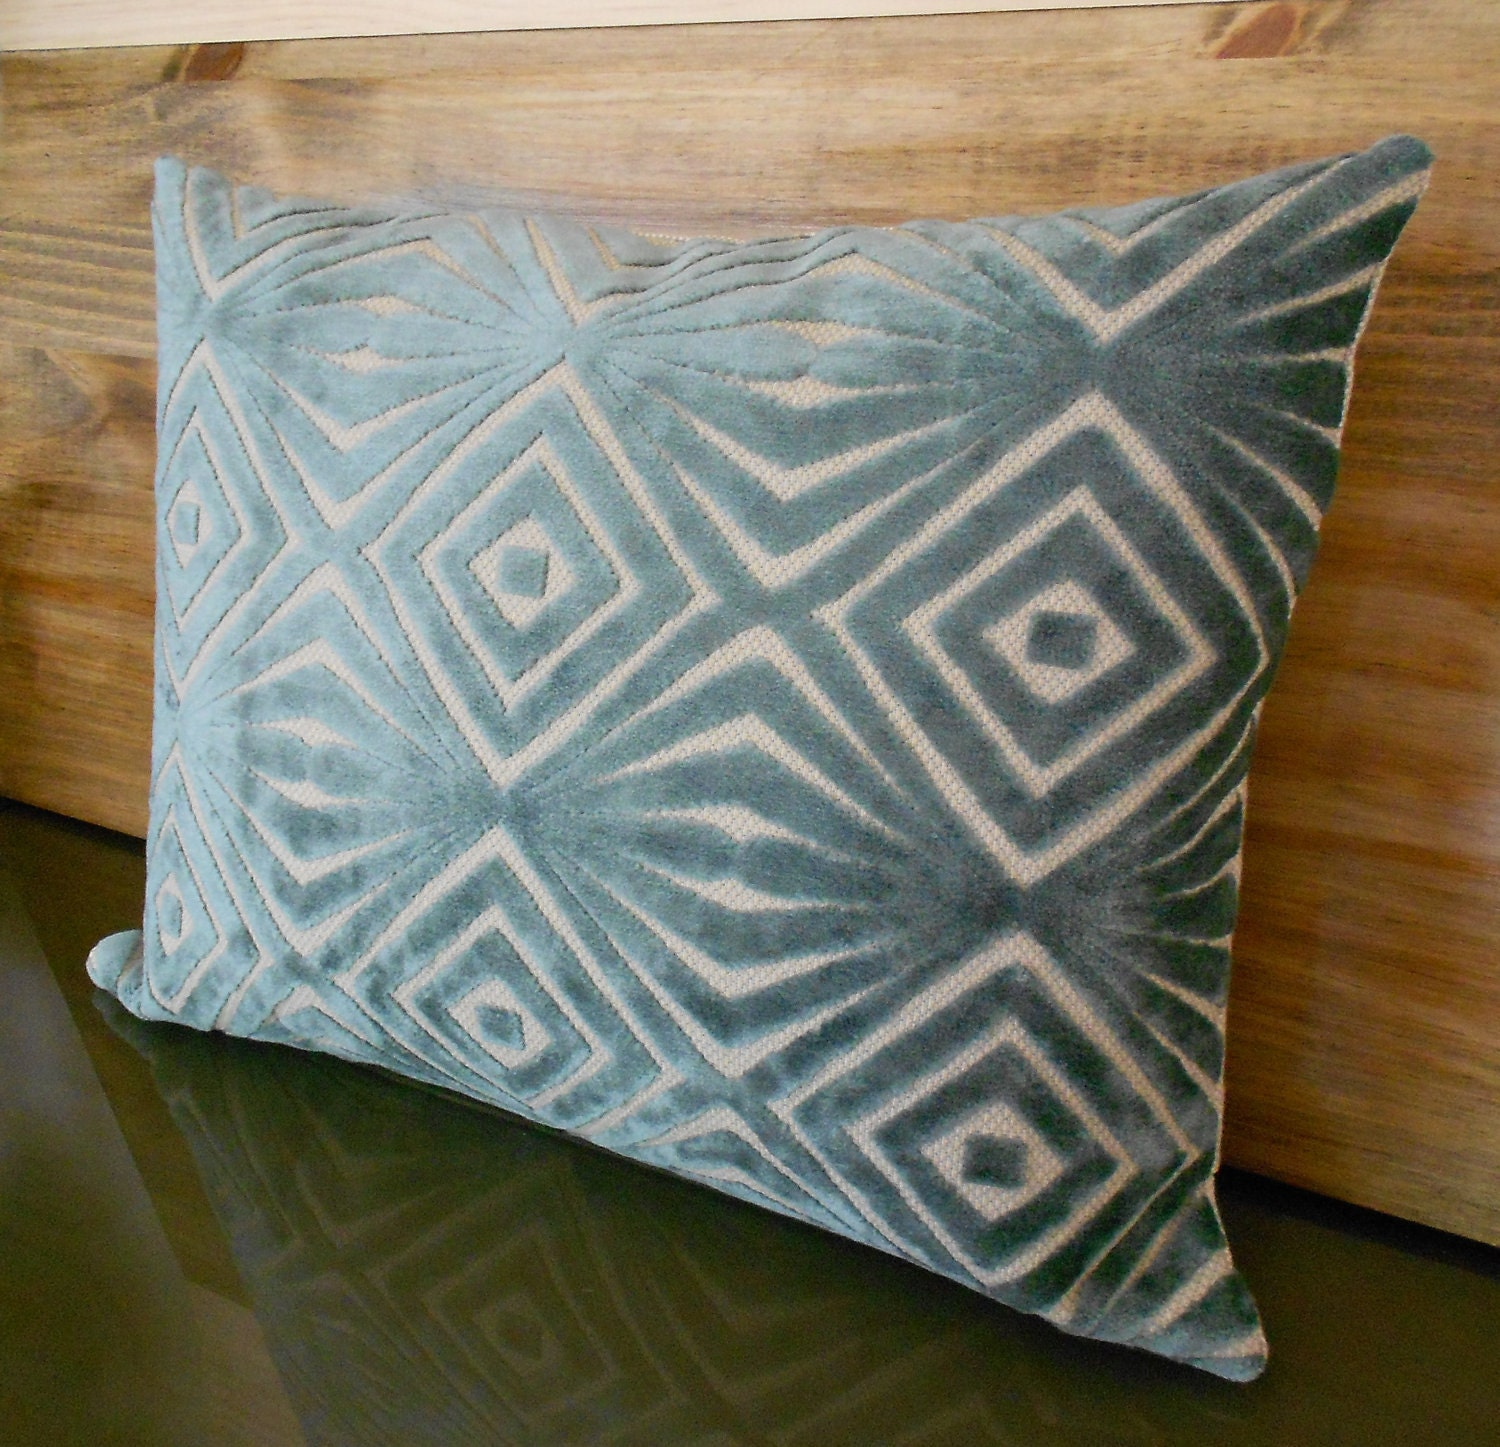 Decorative Pillows With Teal : Decorative pillow cover retro teal blue cut velvet